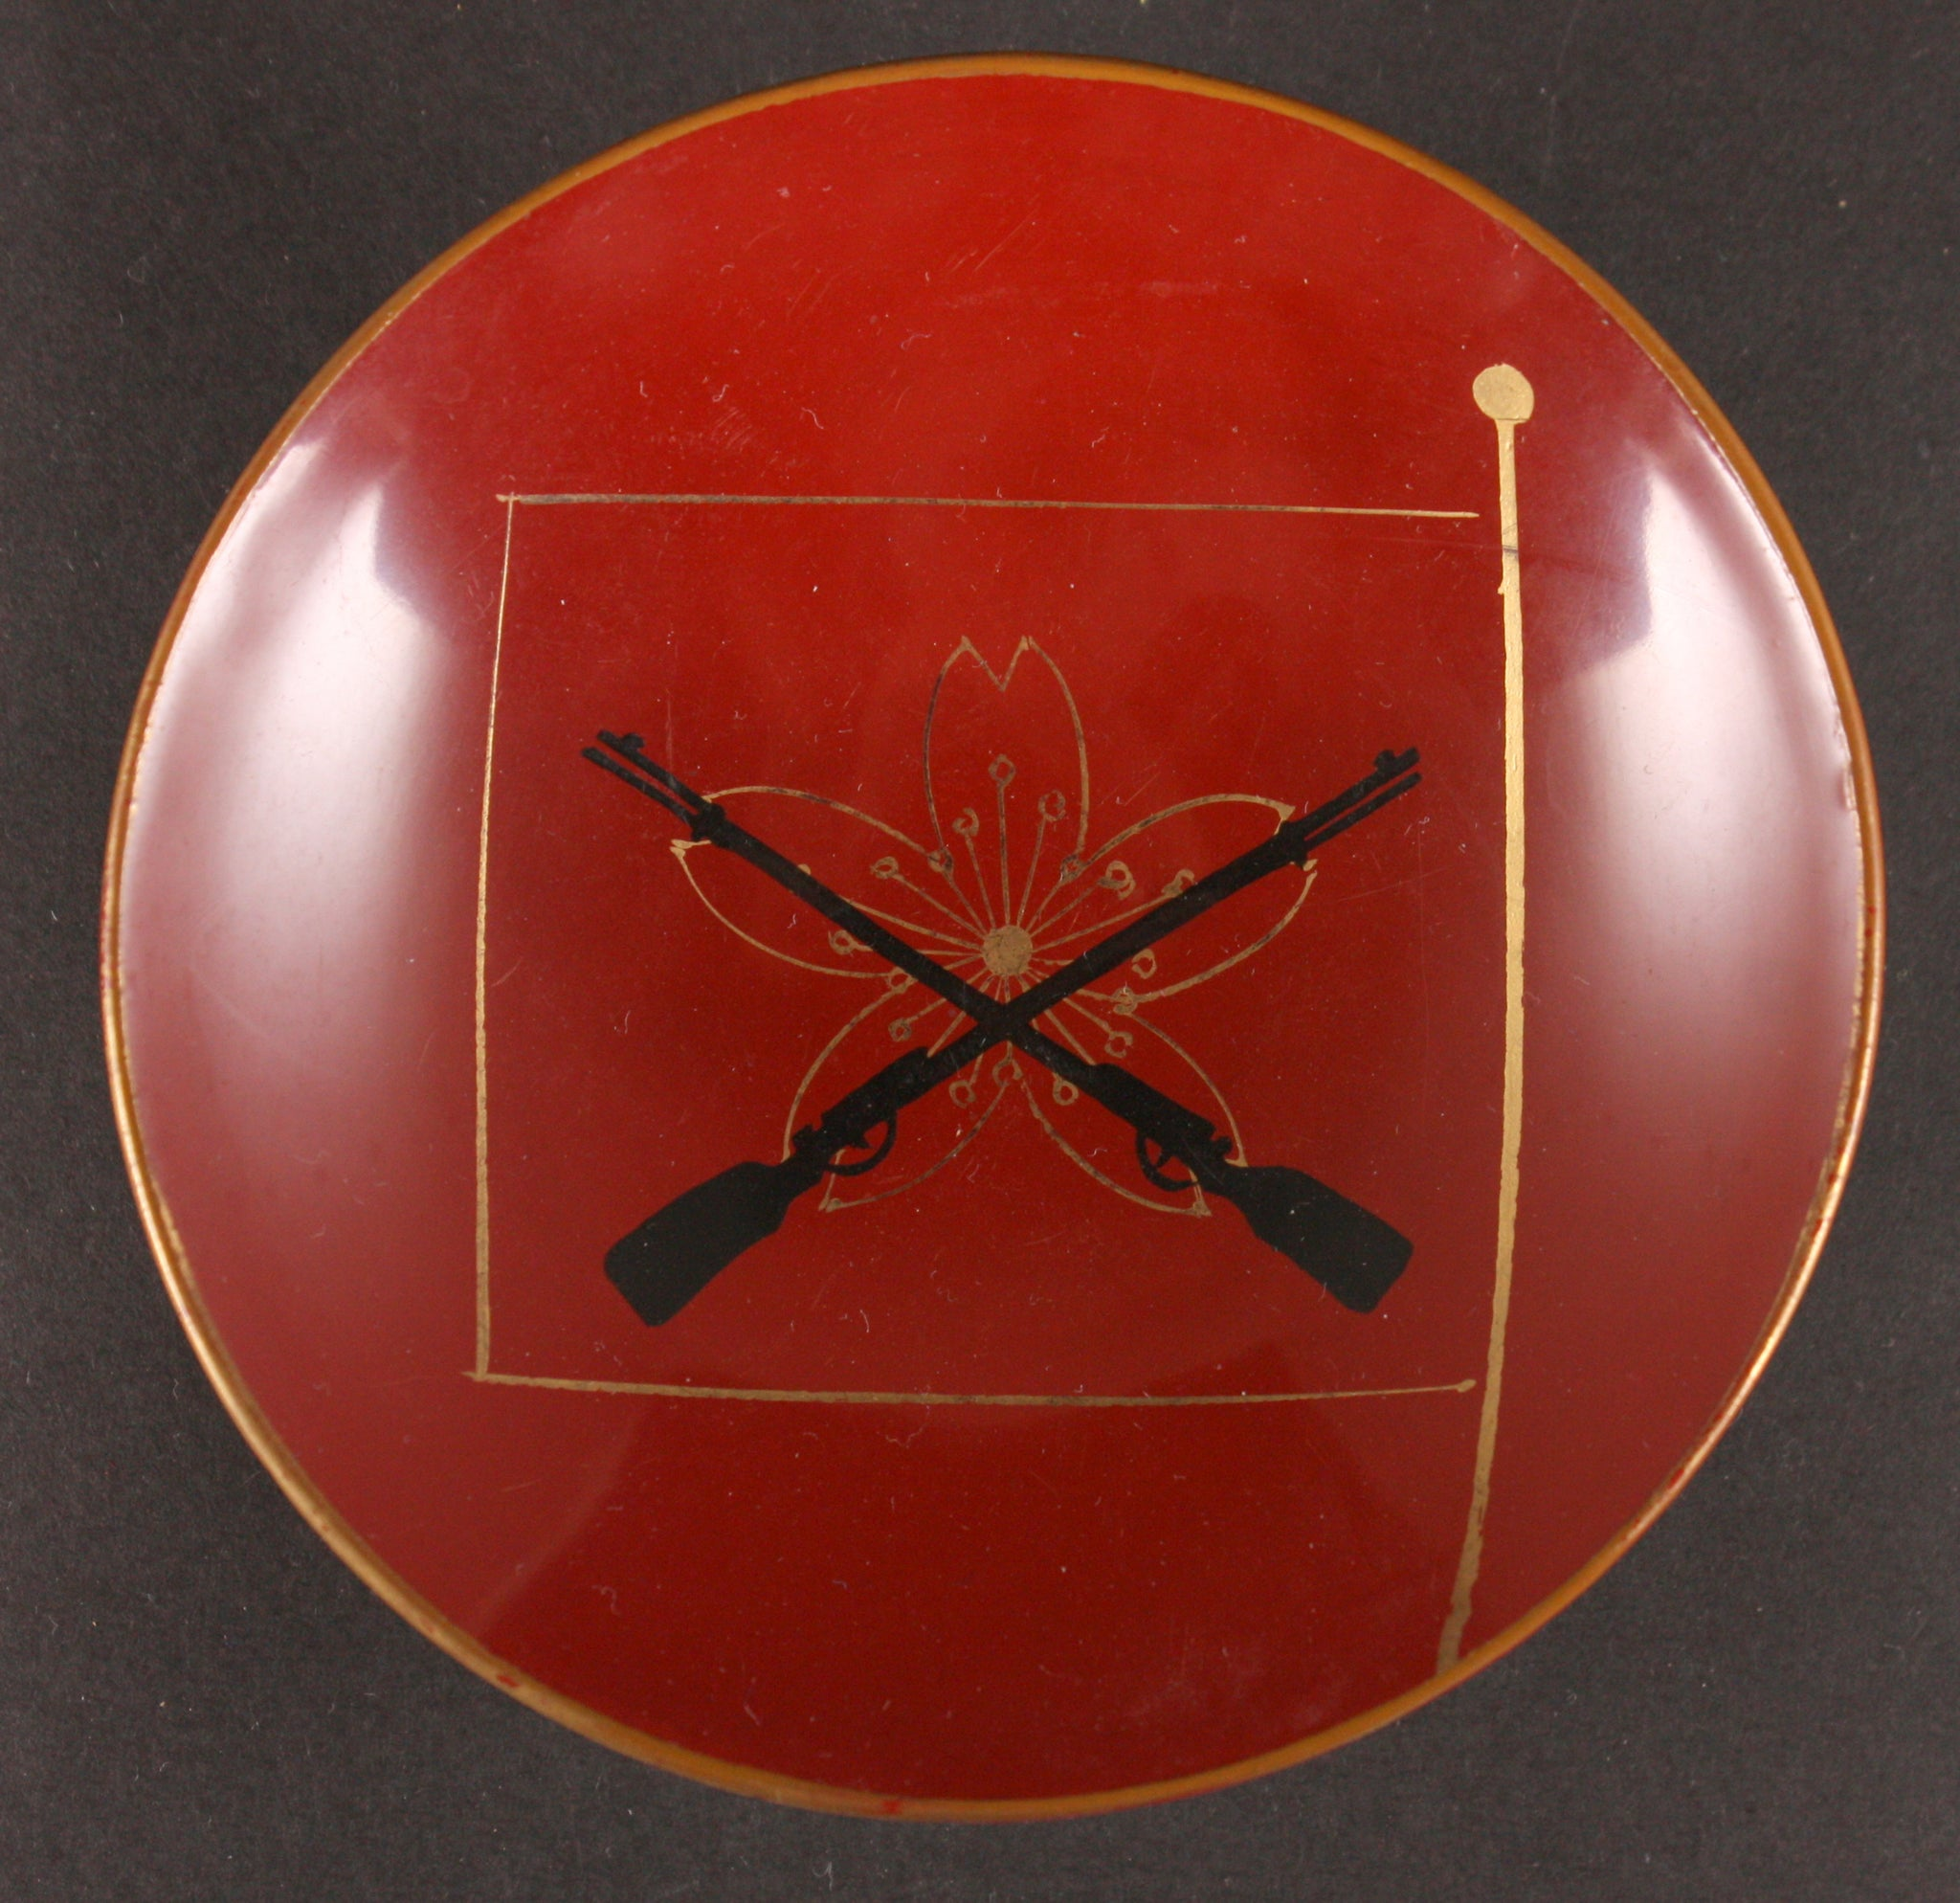 Antique Japanese Military 1913 Sharpshooter Award Lacquer Army Sake Cup